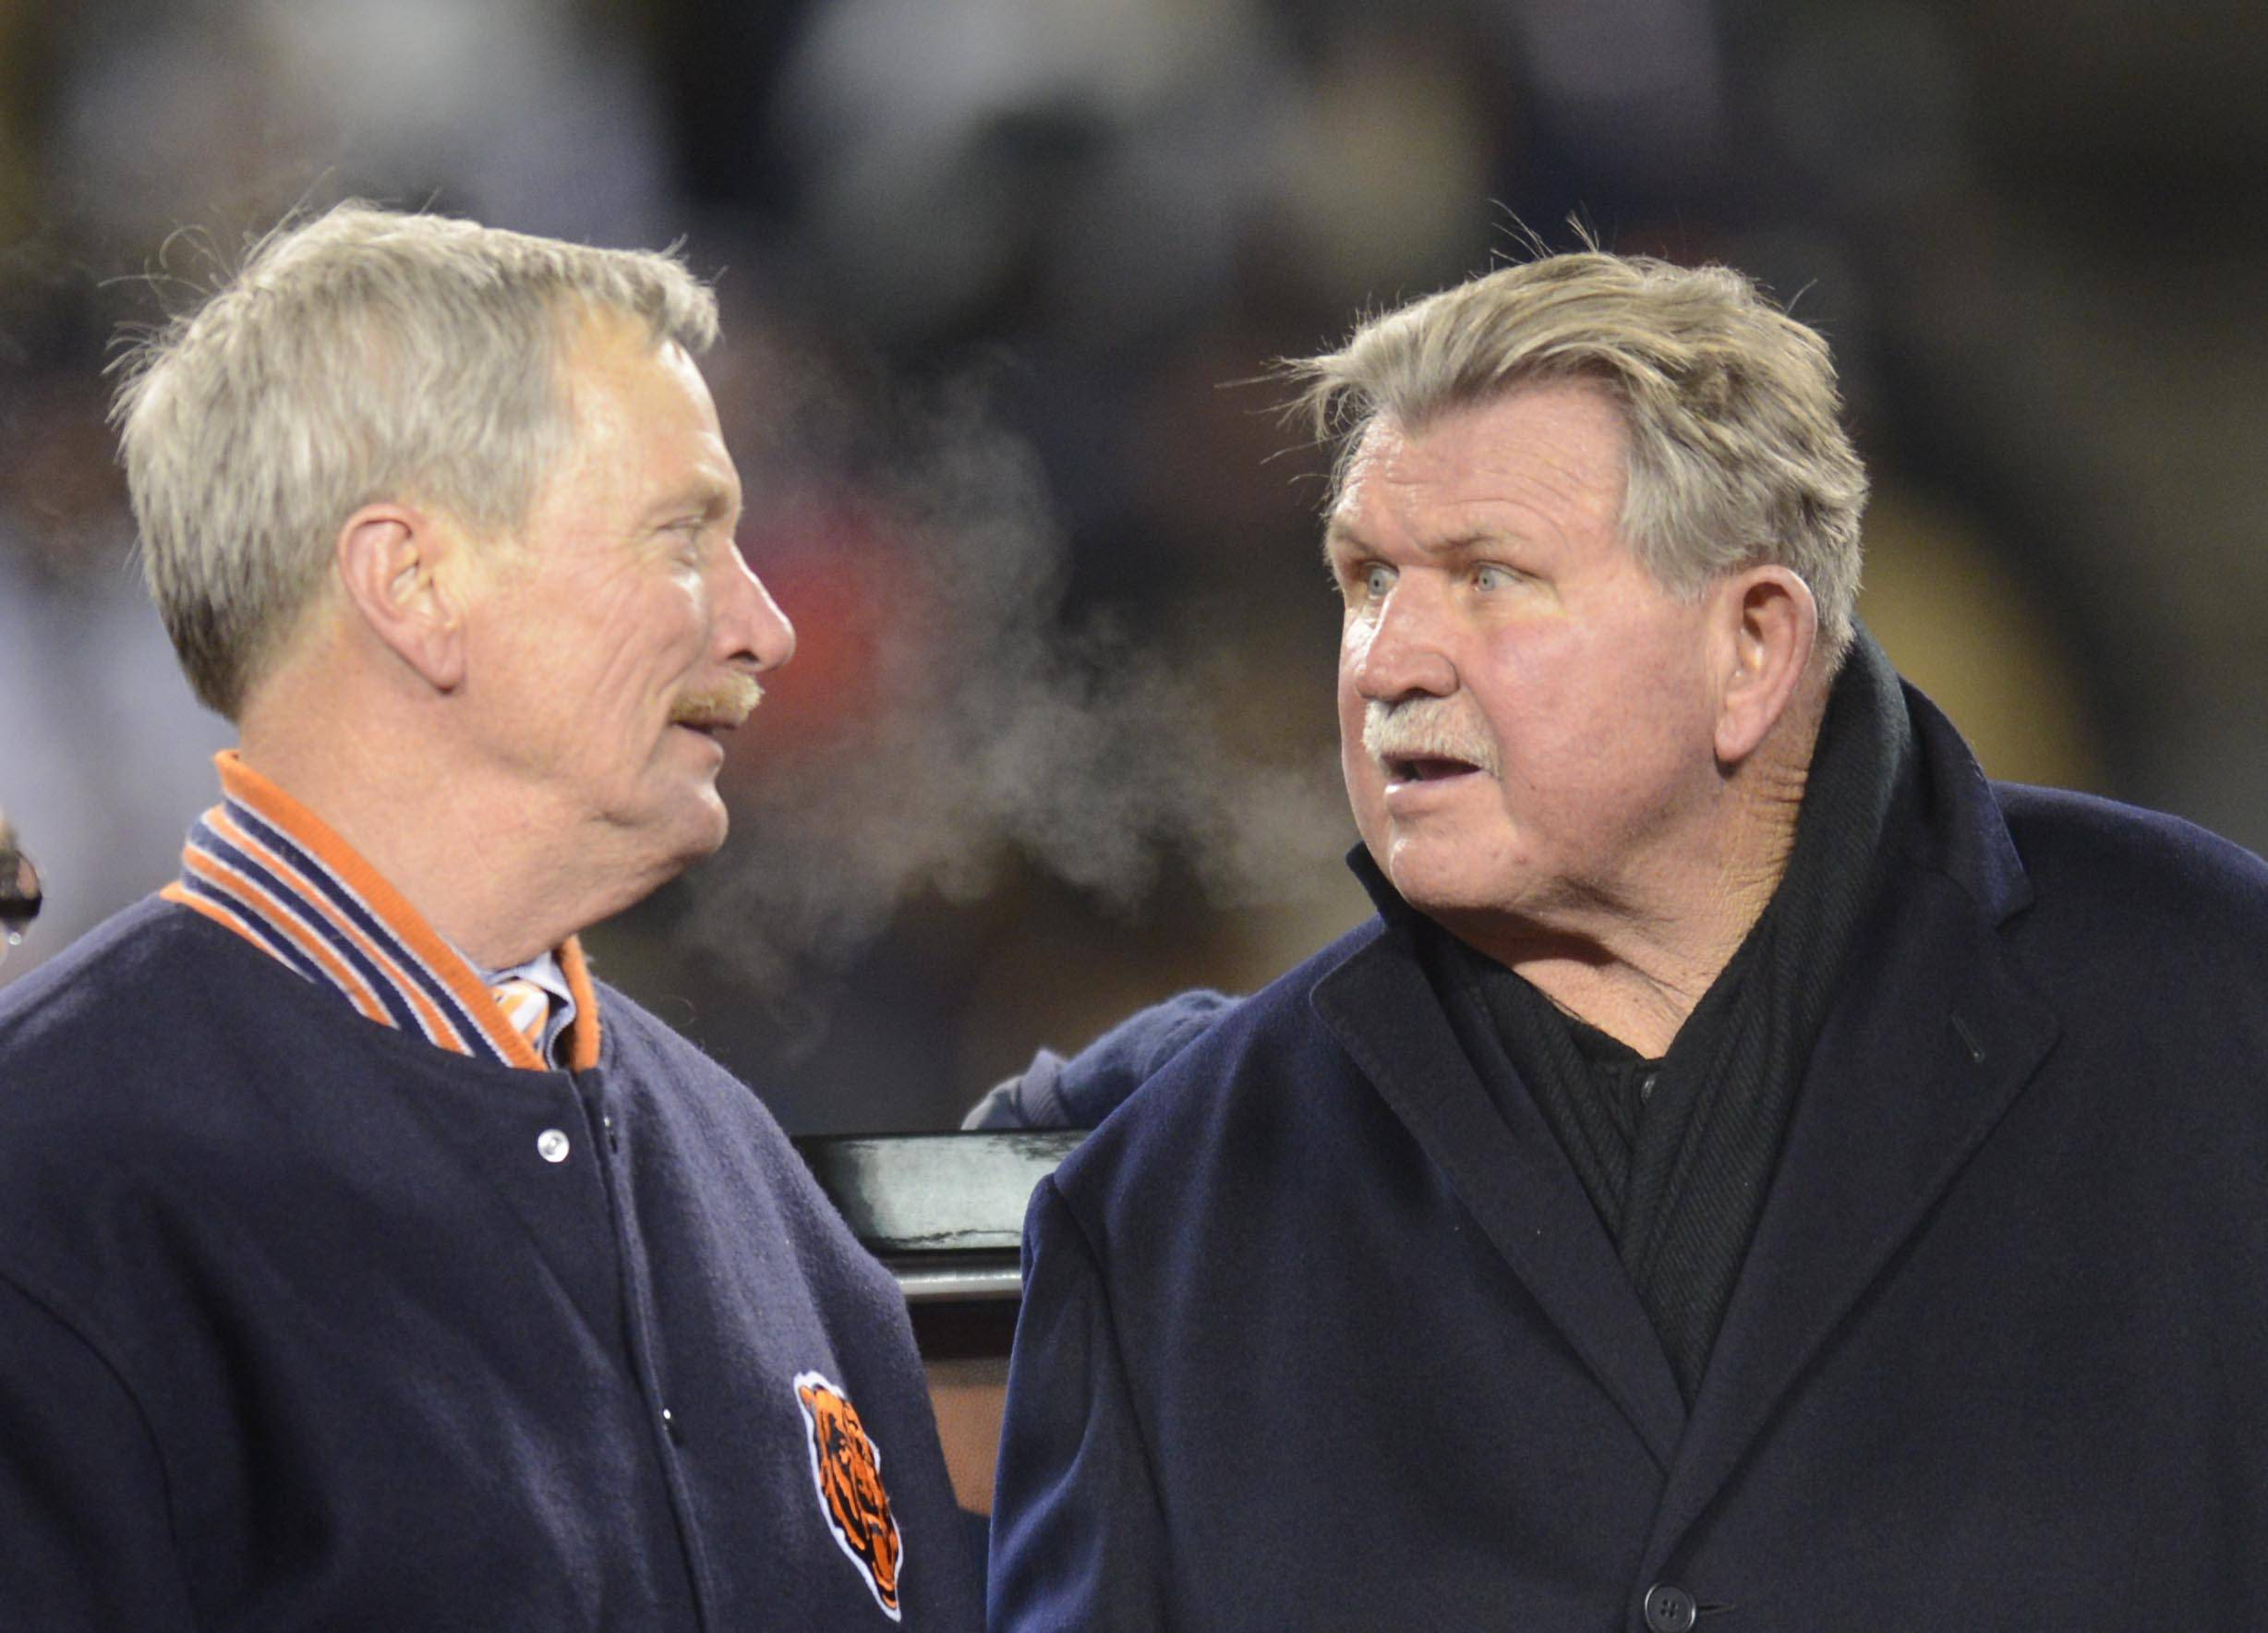 Former Bears head coach Mike Ditka talks with George McCaskey, chairman of the board of the Bears, at Soldier Field.